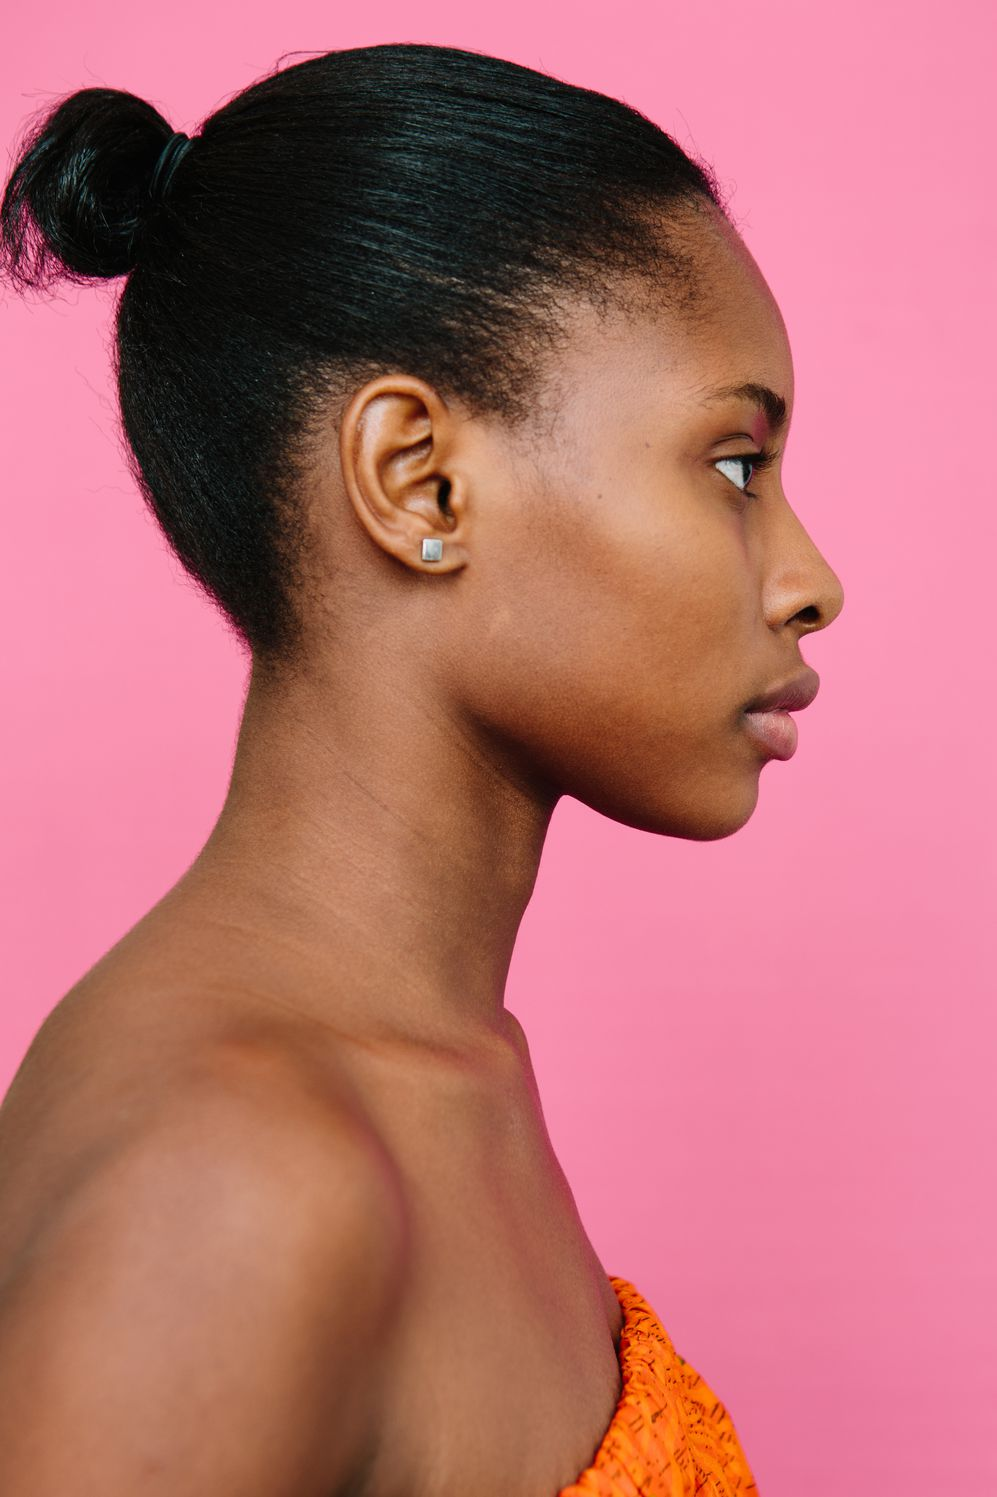 What Nobody Tells You About Using Acne Products on Black Skin